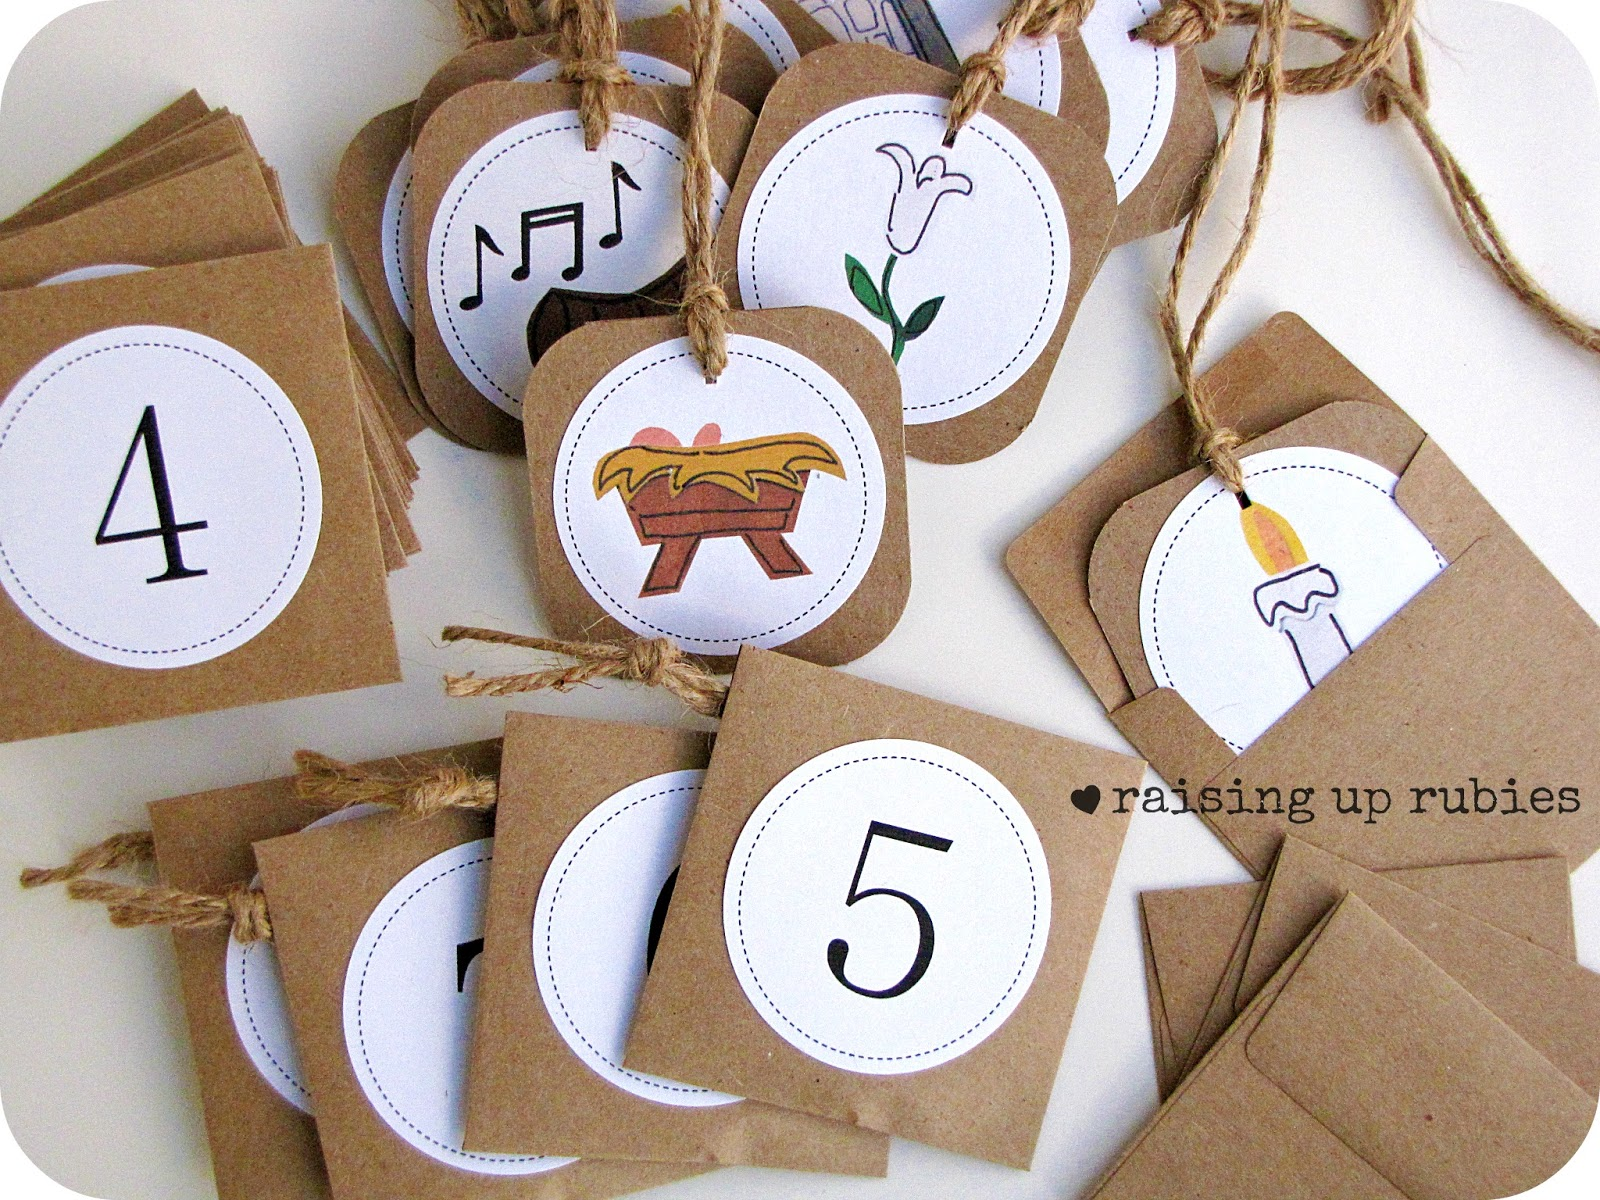 picture about Printable Jesse Tree Ornaments named Growing Up Rubies- Website: Celebrating Xmas with a Jesse